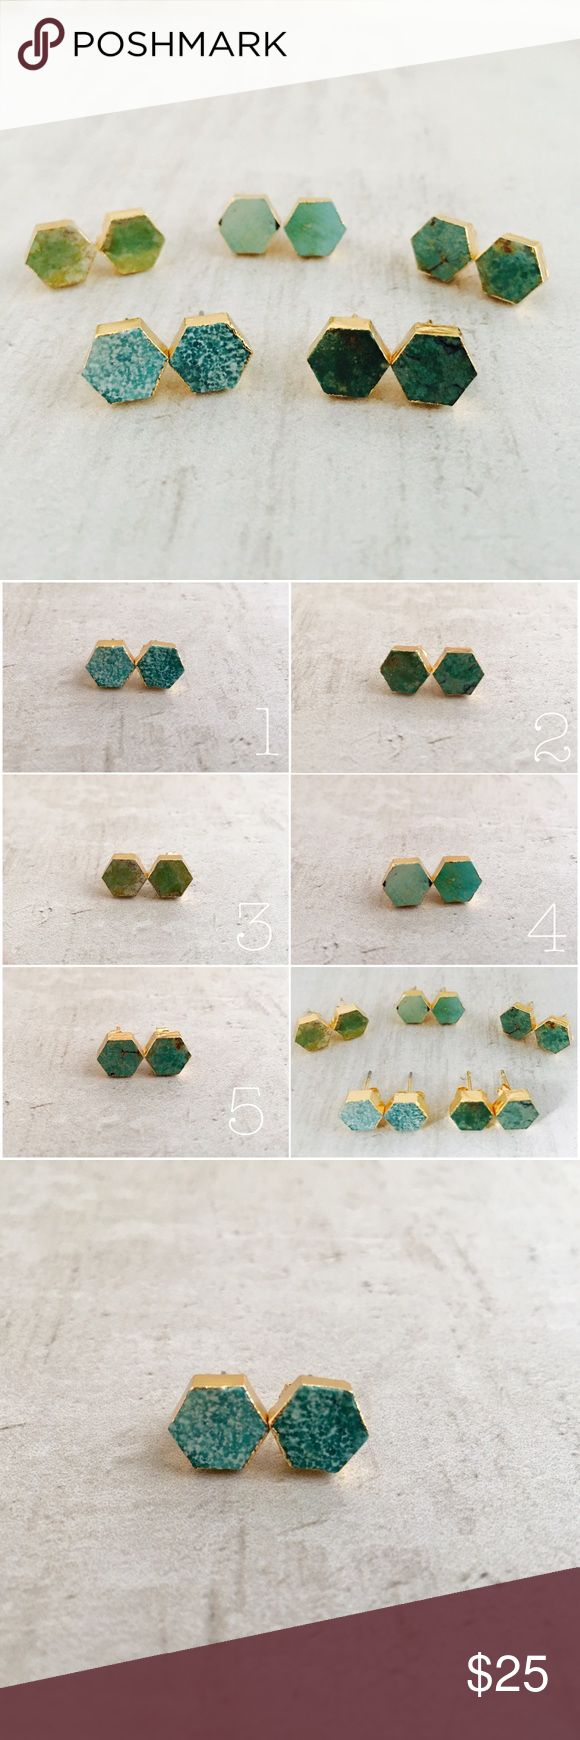 """Natural Turquoise Hexagon Studs Beautiful natural turquoise hexagon studs. Gold dipped, each earring is a unique, handmade master piece. Choose one of five treasured sets. Picture 2 shows your choices - picture one coordinates front to back, left to right. The individual pictures coordinate 1 - 5. Due to the nature of these beauties any """"flaws"""" contribute to the individual characteristic of each piece therefore are highly regarded. 1/8"""" x 3/8"""" Jewelry Earrings"""